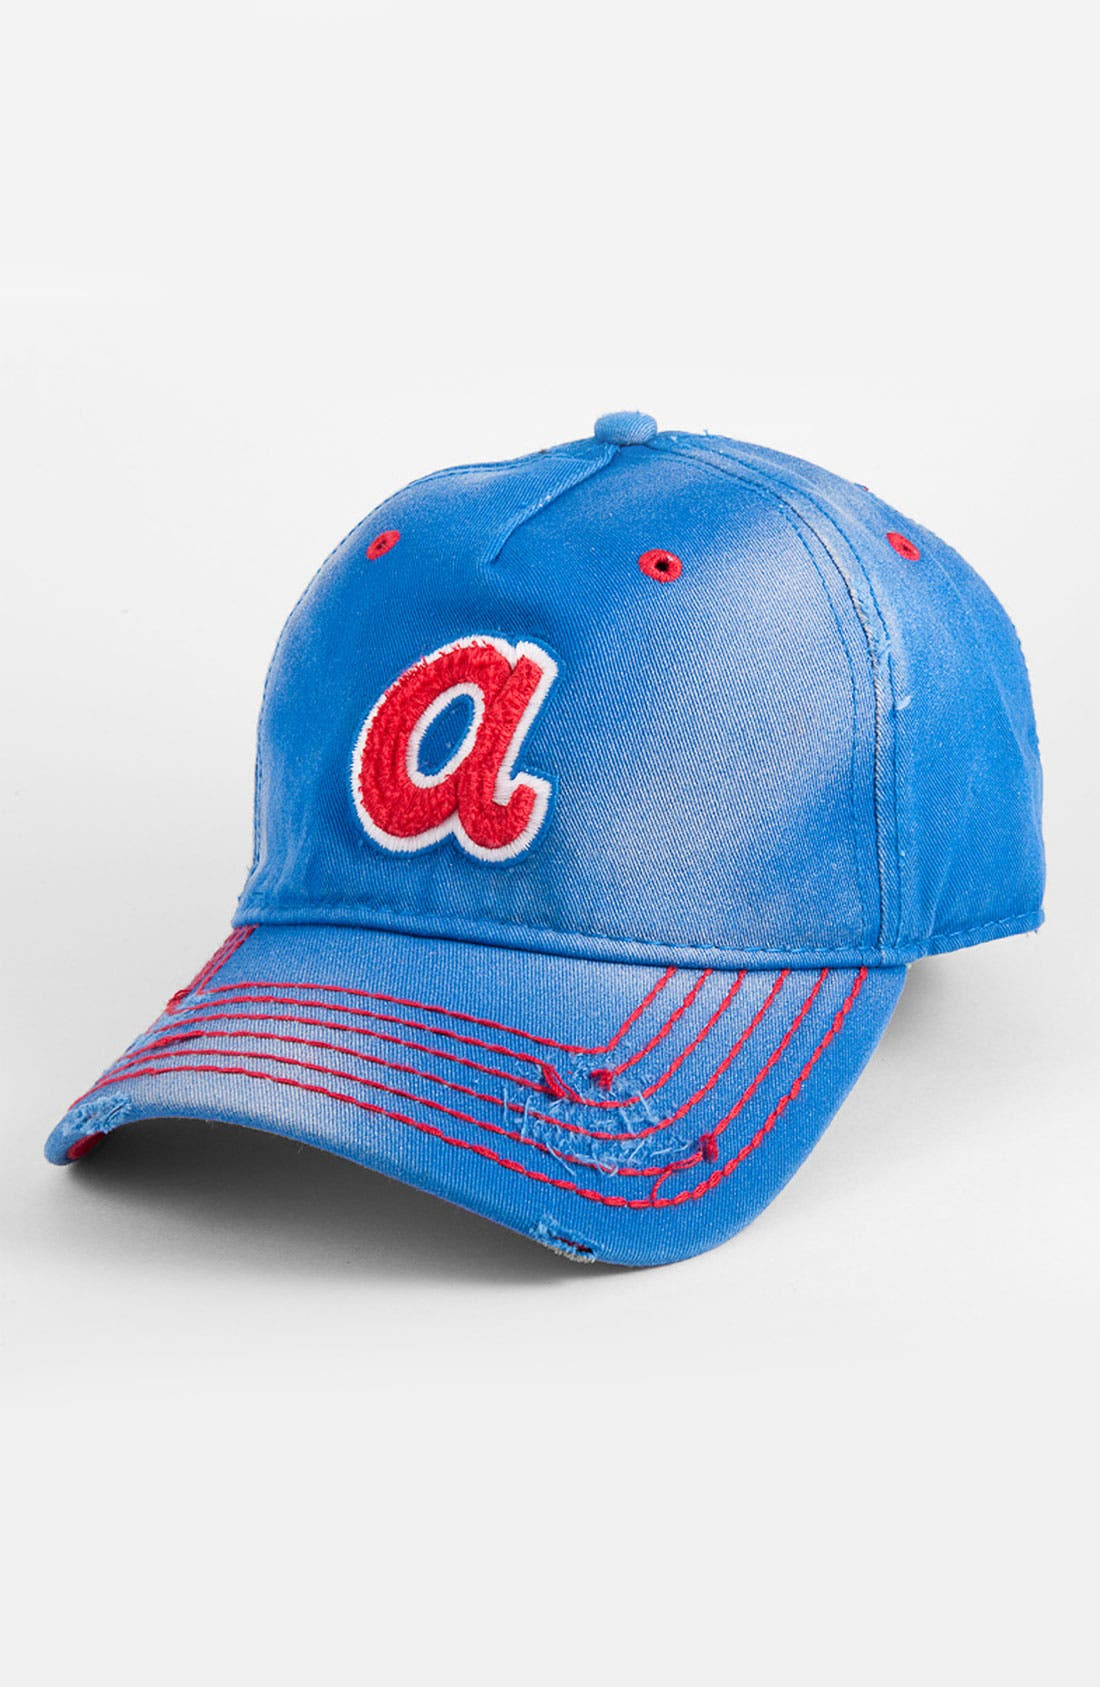 Alternate Image 1 Selected - American Needle 'Braves' Baseball Cap